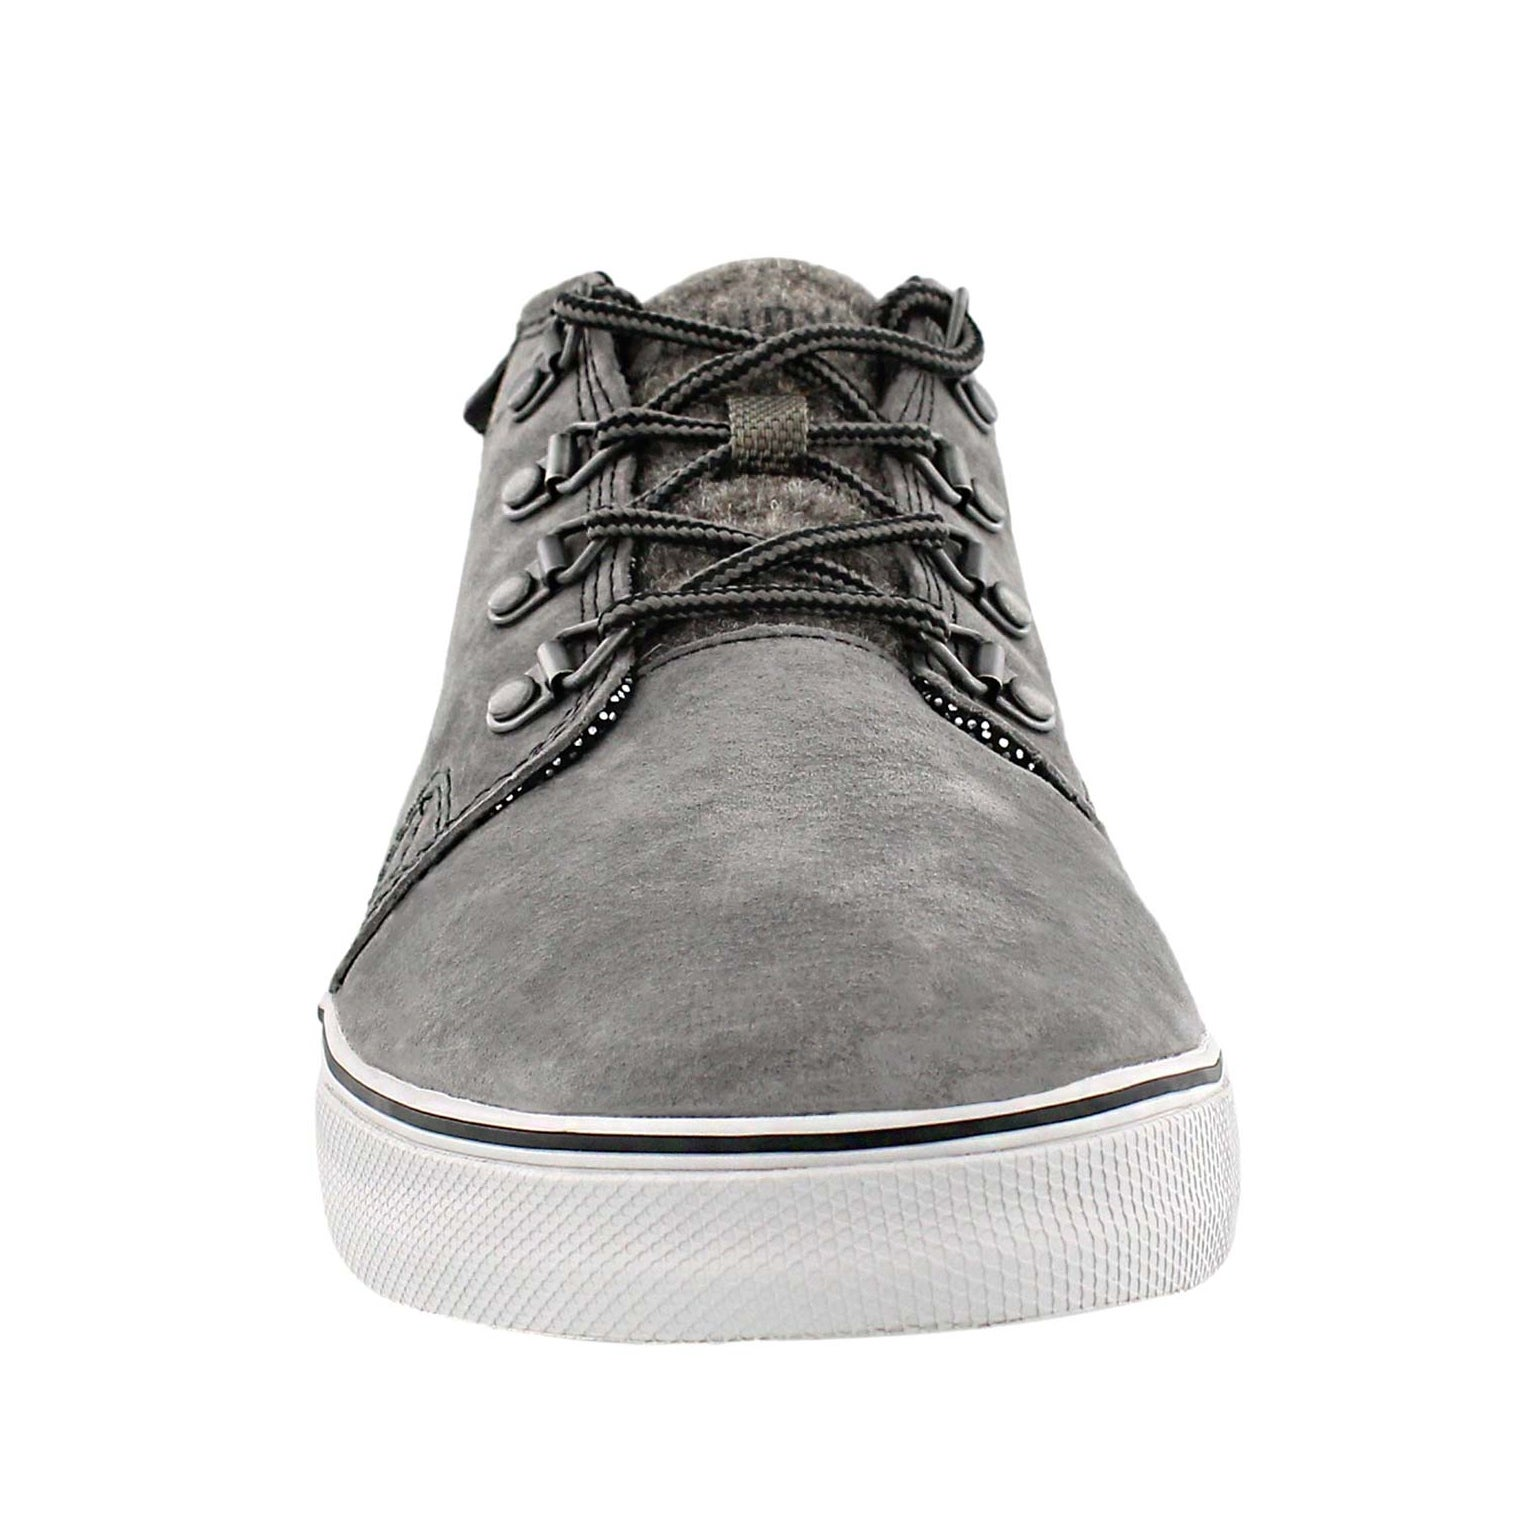 Mns Vulc Half Dome charcoal casual shoe